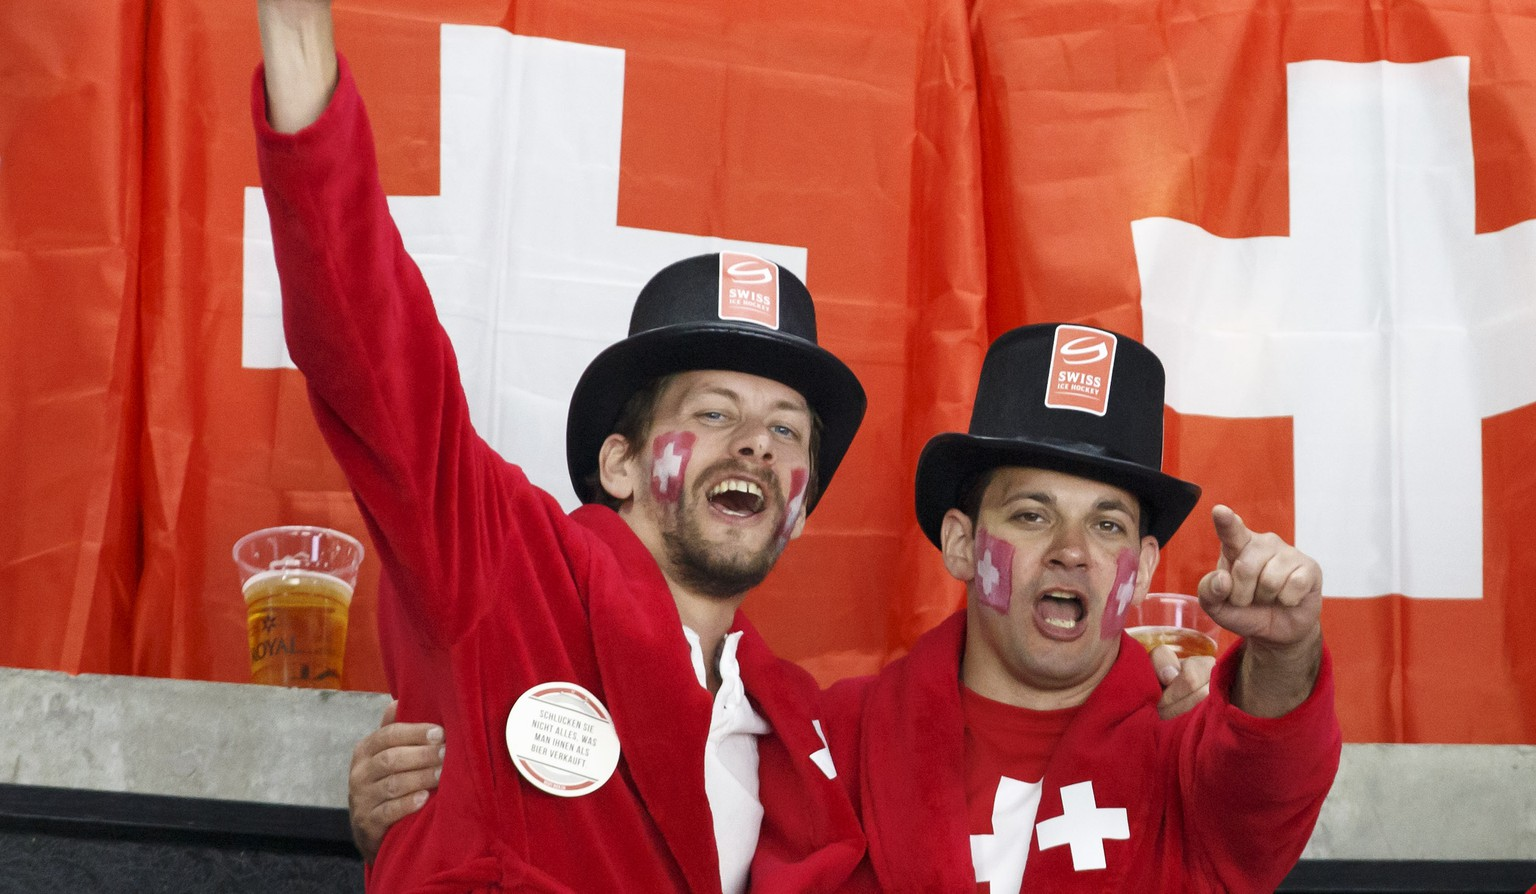 Switzerland's supporters cheer their team, during the IIHF 2018 World Championship preliminary round game between Switzerland and France, at the Royal Arena, in Copenhagen, Denmark, Tuesday, May 15, 2018. (KEYSTONE/Salvatore Di Nolfi)